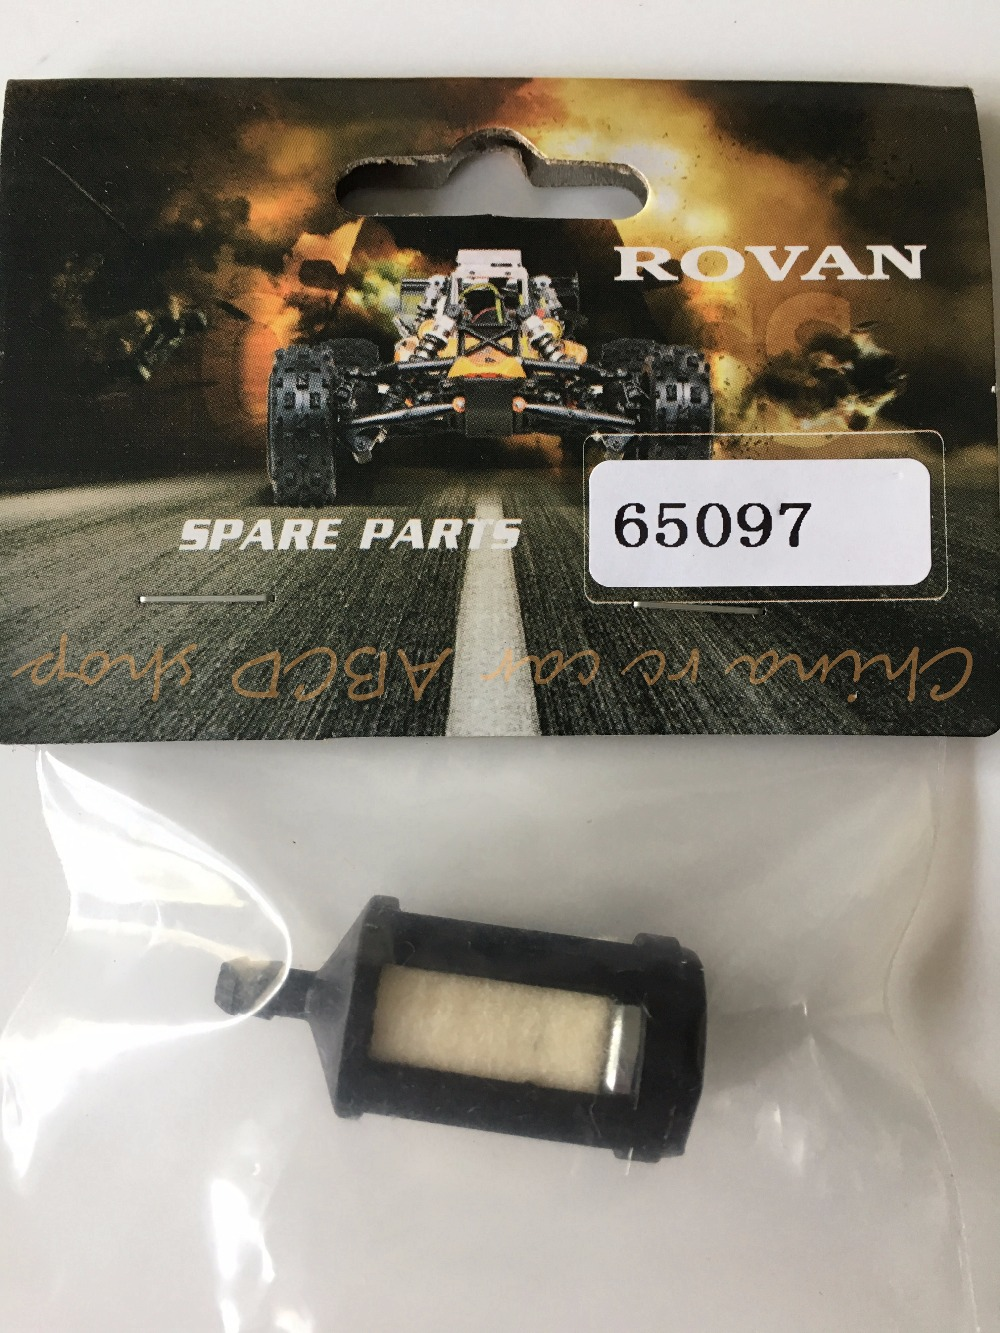 Rovan 1/5 rc car Baja fuel filter for hpi baja 5b parts rovan km rc cars-in  Parts & Accessories from Toys & Hobbies on Aliexpress.com | Alibaba Group